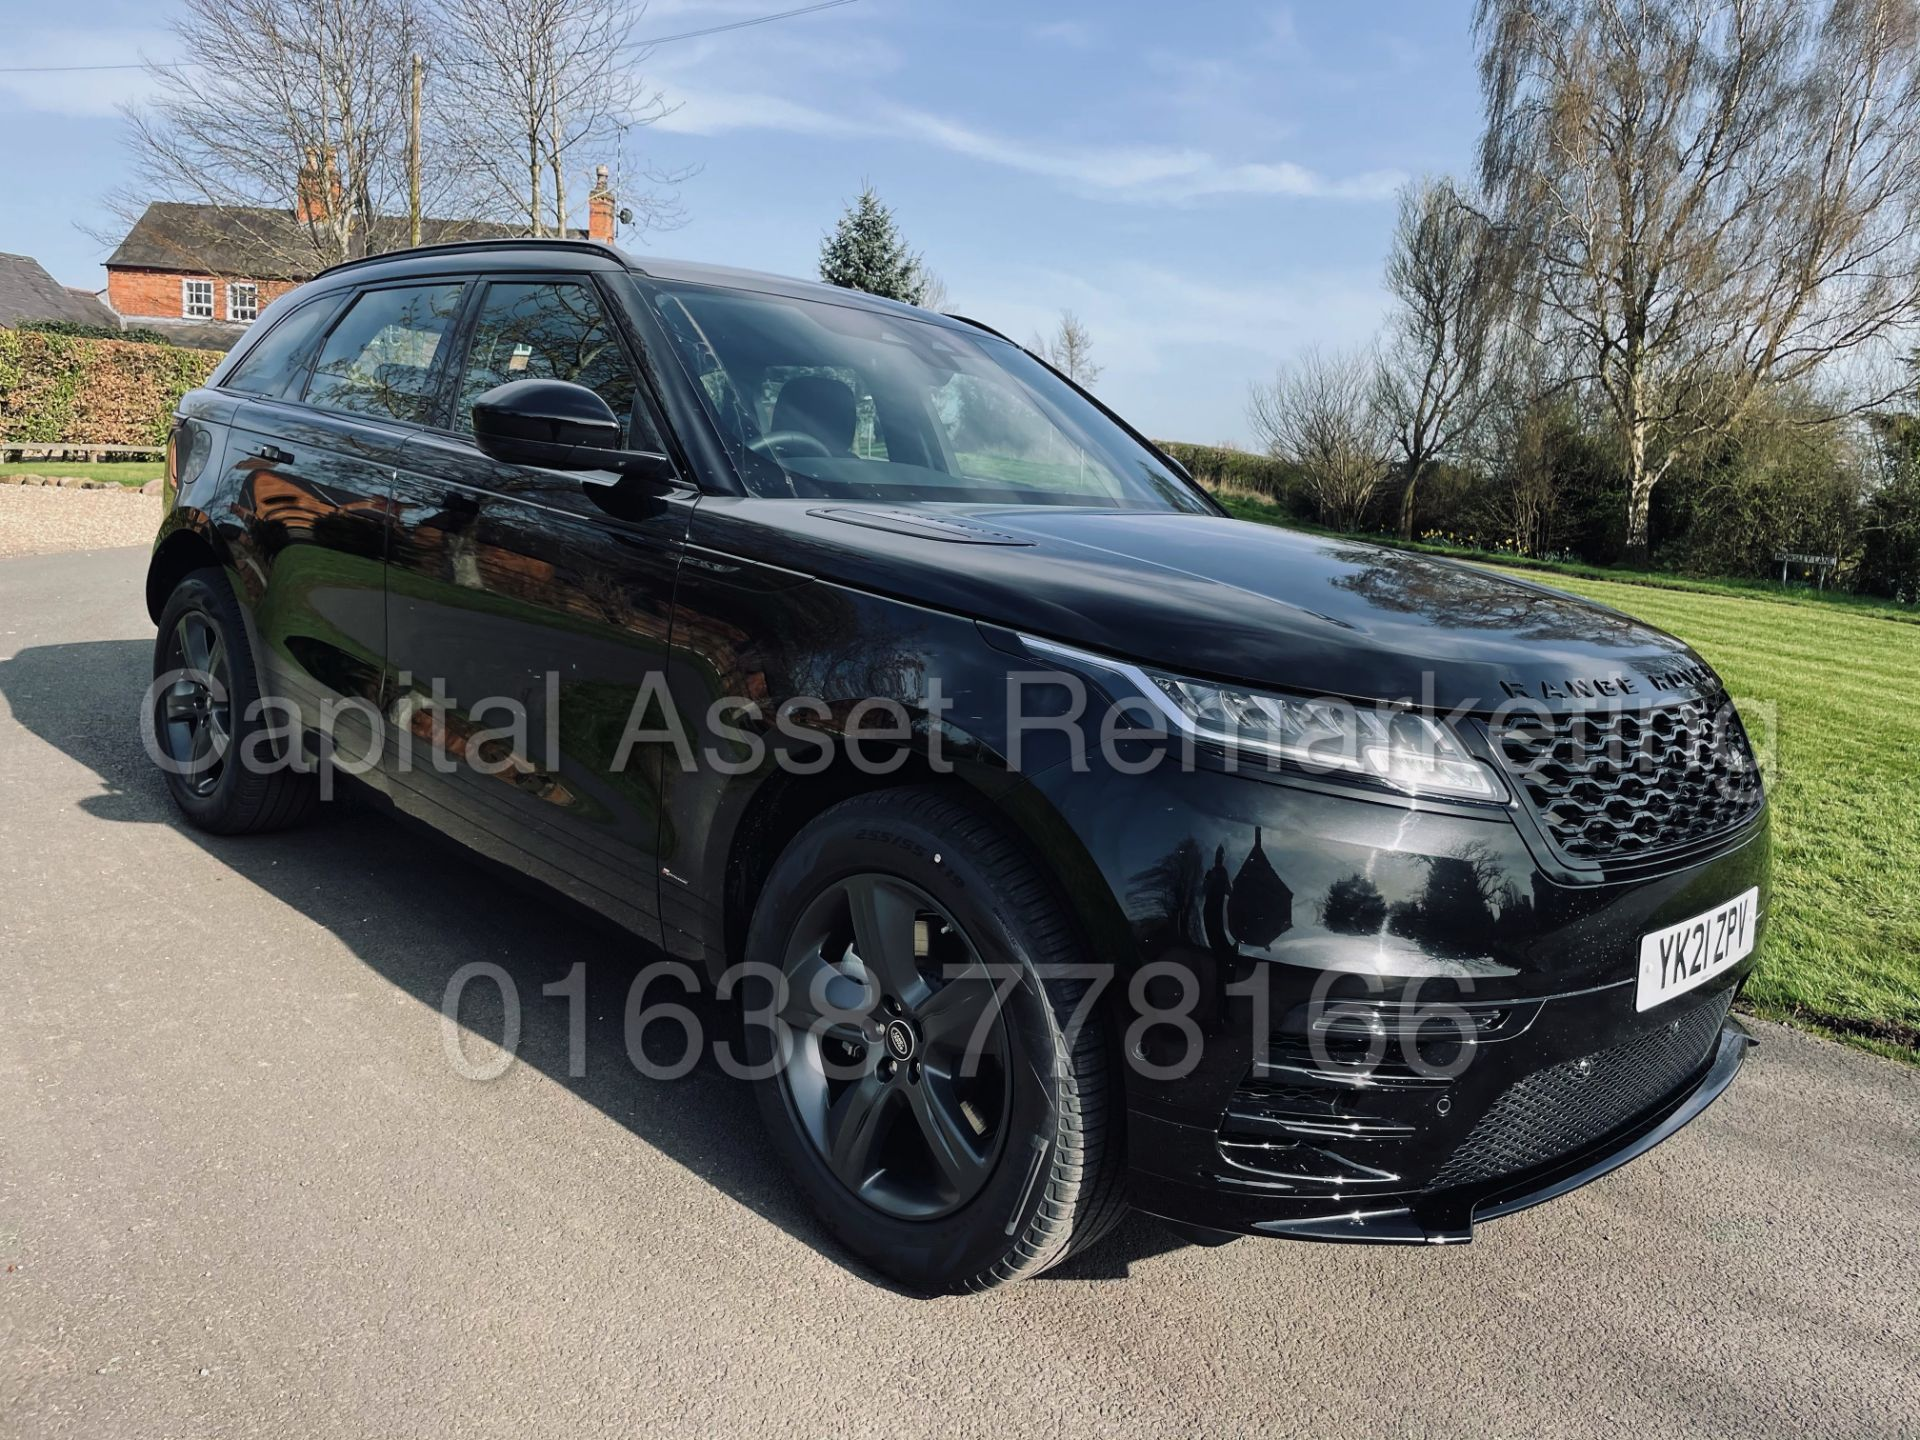 (On Sale) RANGE ROVER VELAR *R-DYNAMIC* SUV (2021) *8 SPEED AUTO - LEATHER* (DELIVERY MILES) - Image 3 of 50